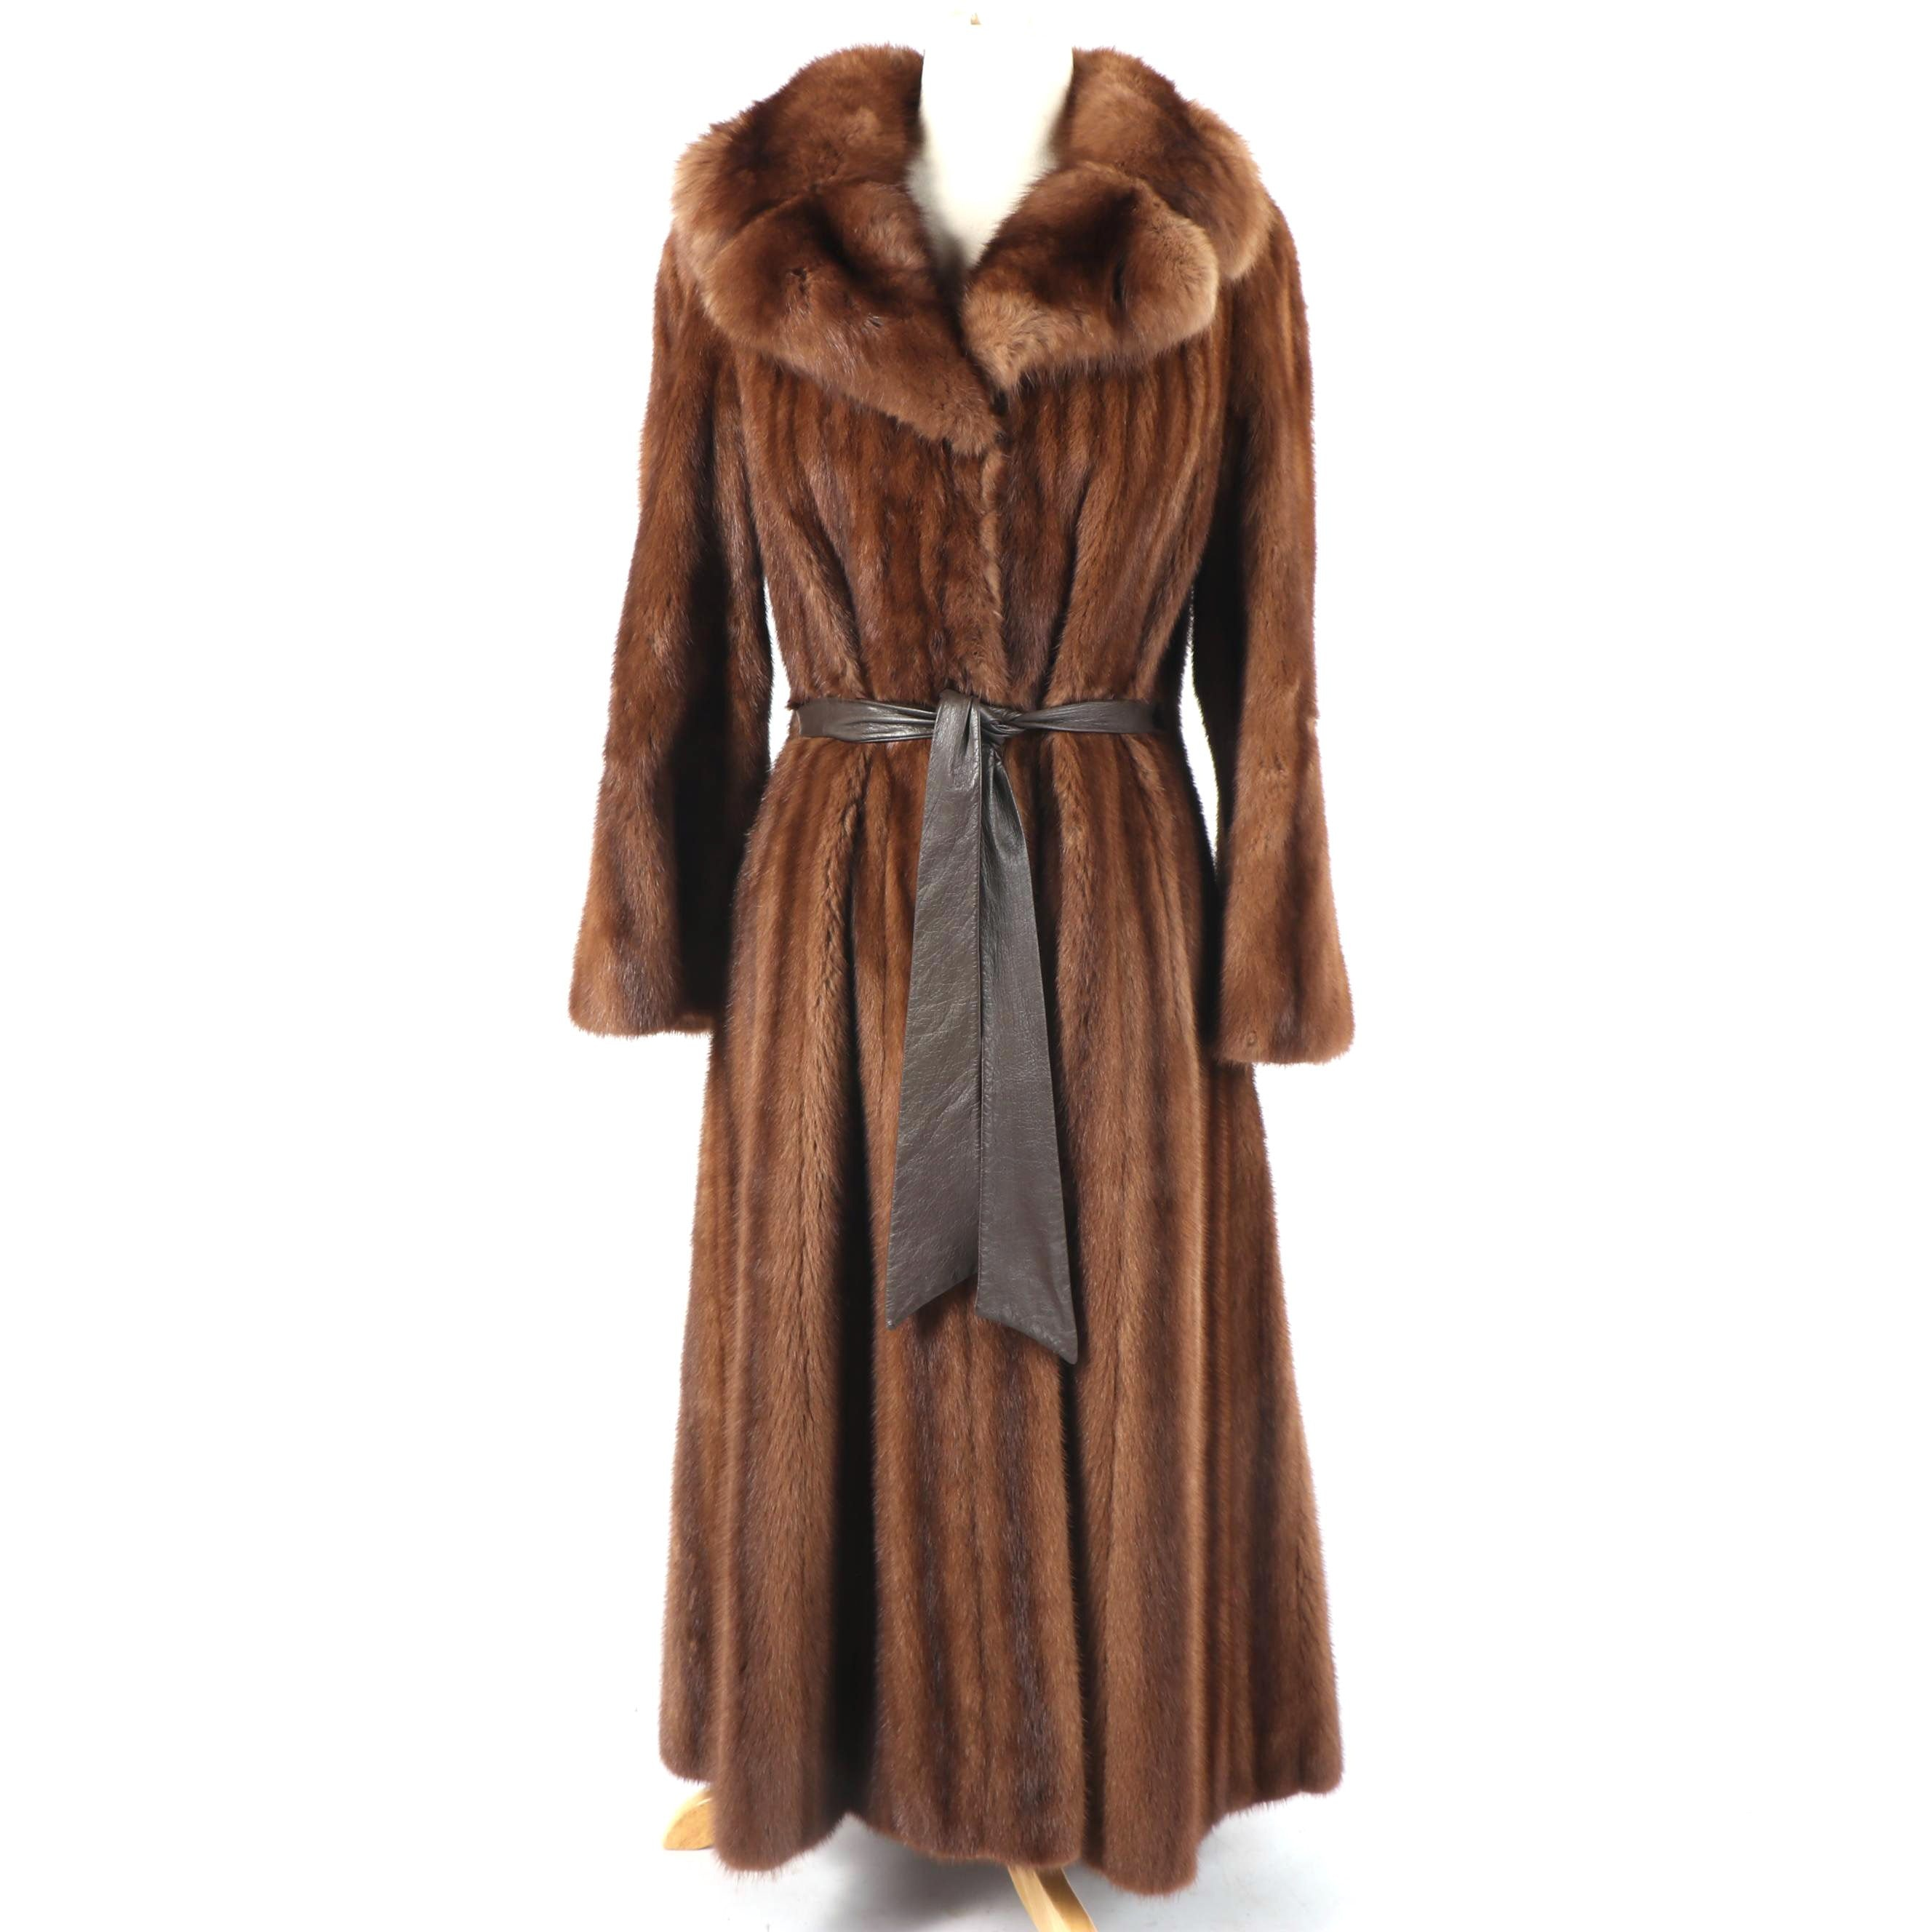 Vintage Frost Bros. Full-Length Mink Fur Coat with Sable Fur Collar